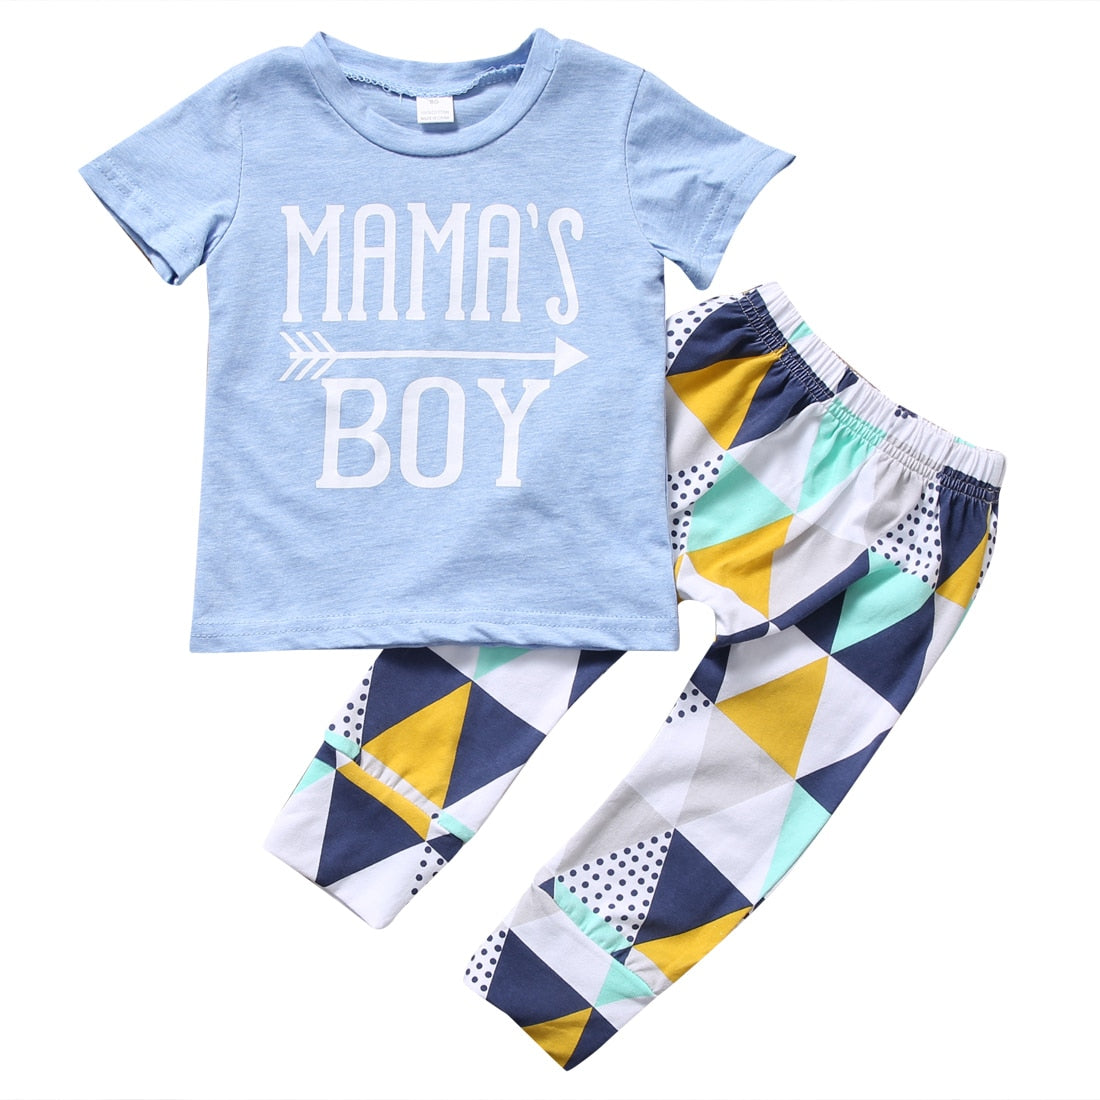 Summer 2017 Newborn Baby Boy Clothes Short Sleeve Cotton T-shirt Tops +Geometric Pant 2PCS Outfit Toddler Kids Clothing Set-eosegal